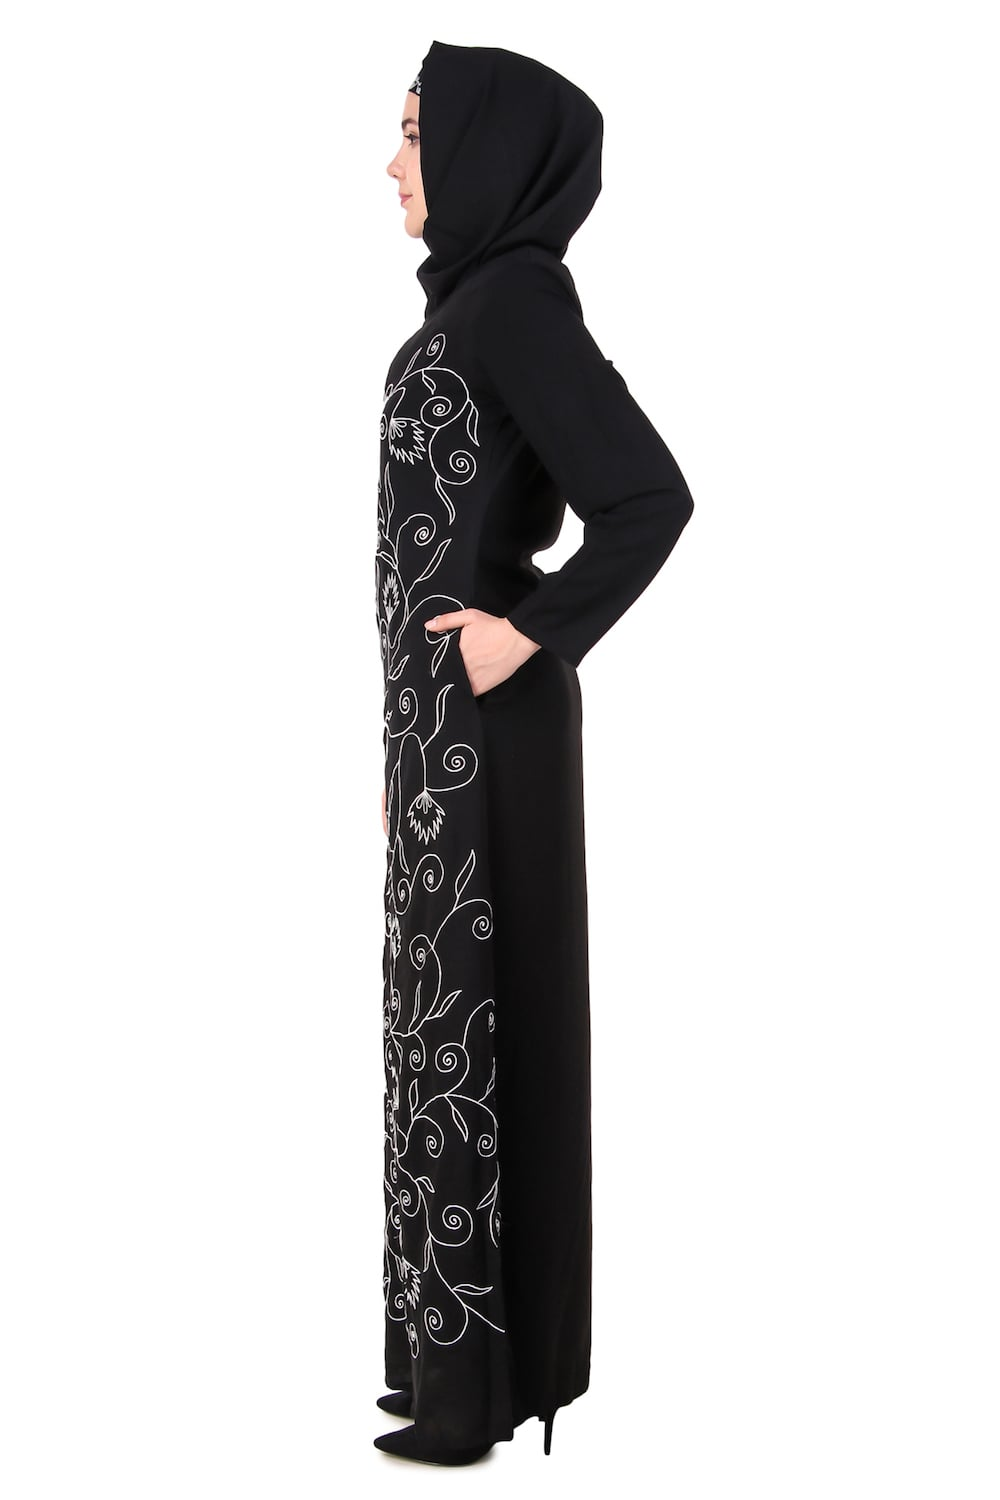 Front Floral Embroidered A-Line Abaya